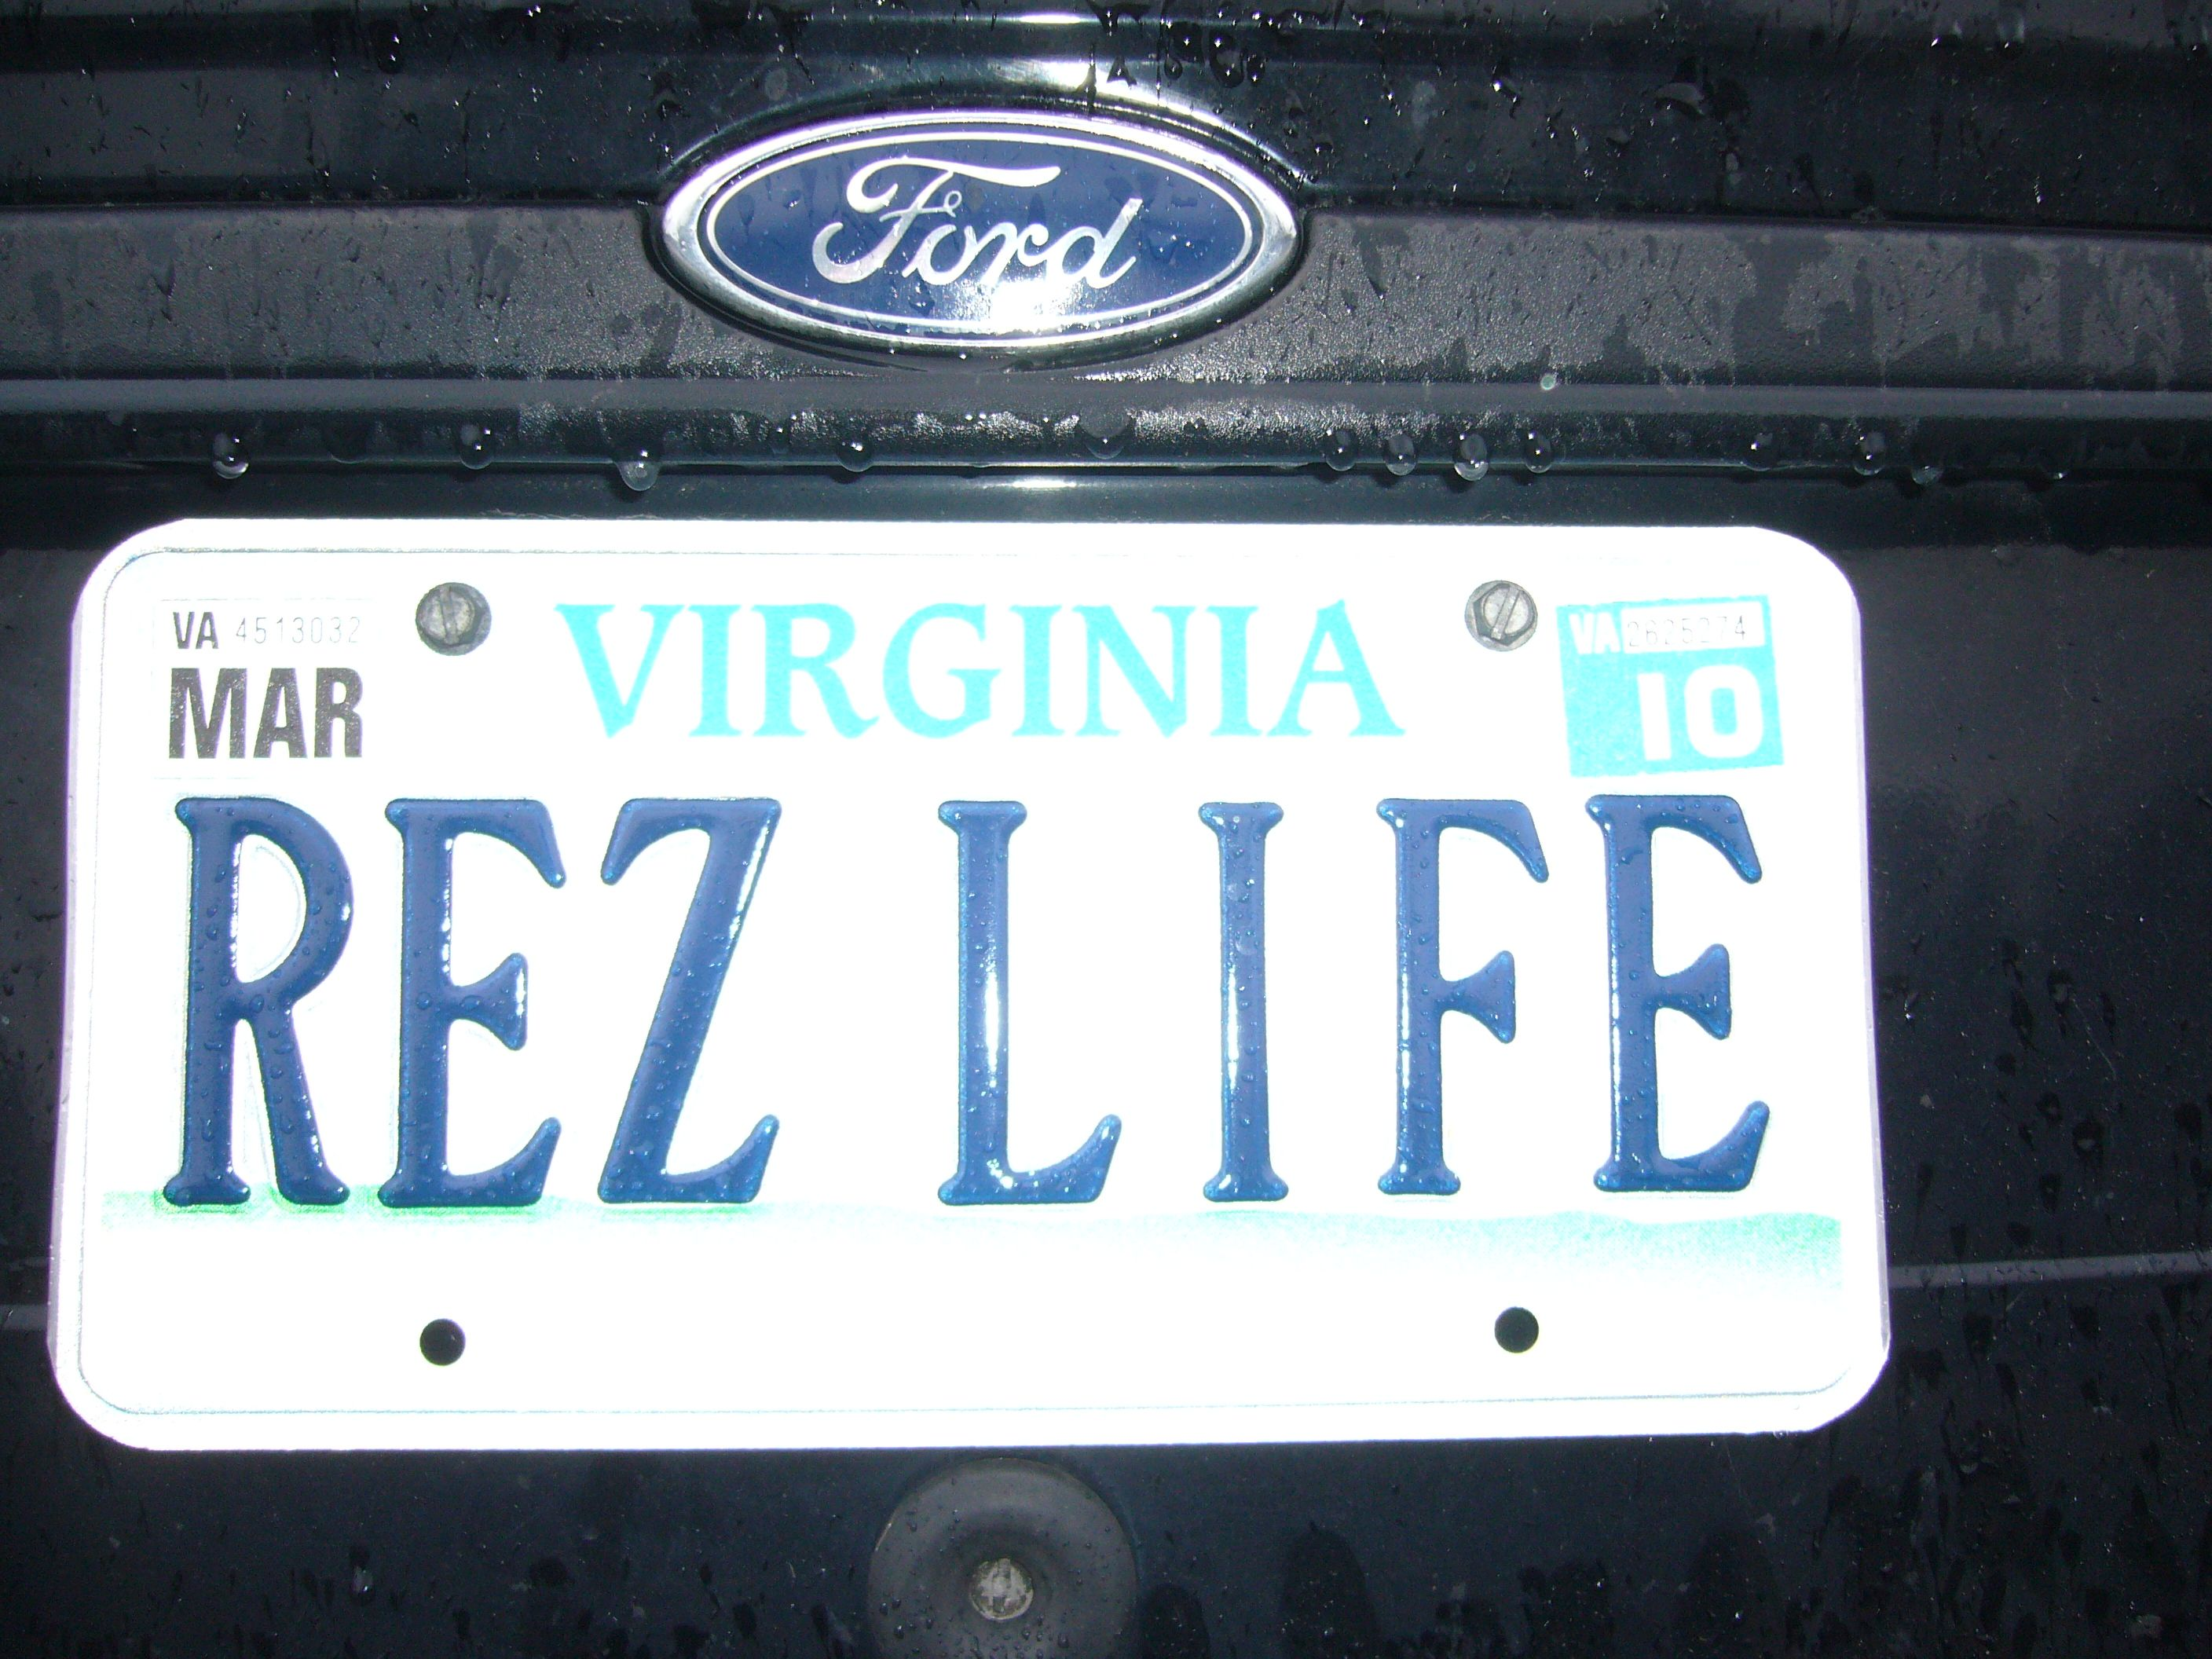 Don't have the Ford any more, but still have the plate. :)